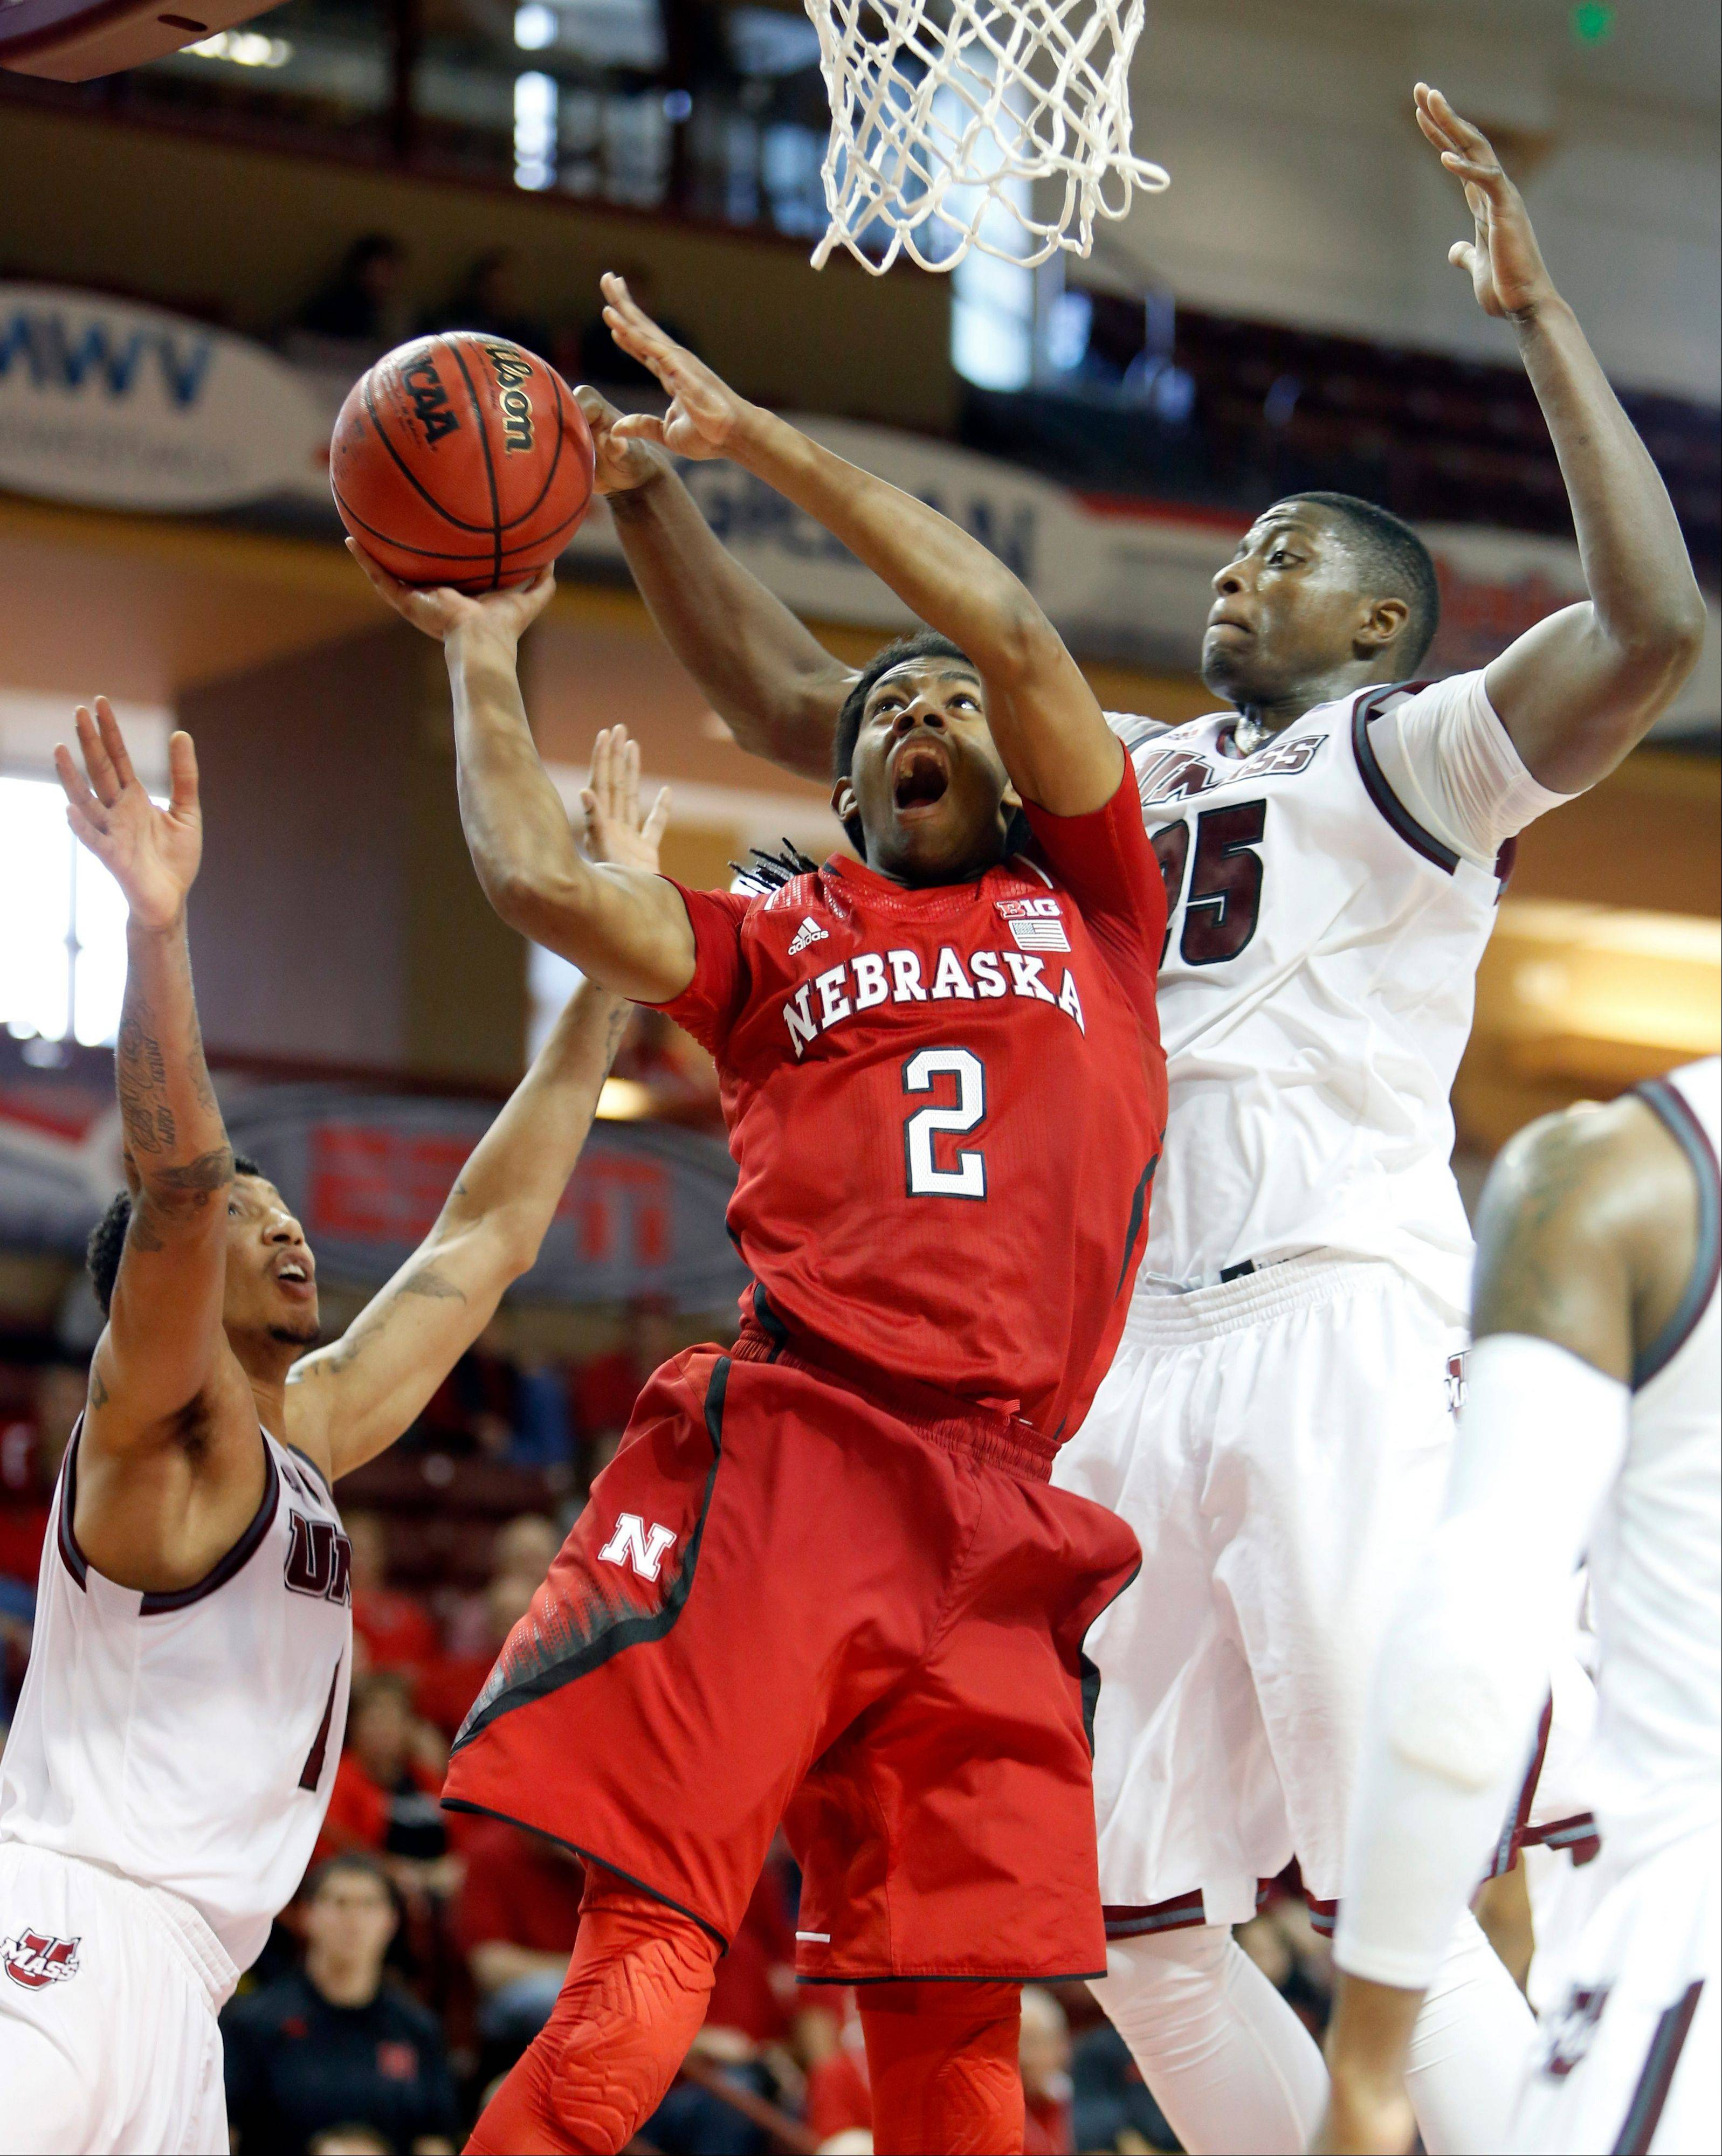 UMass downs Nebraska 96-90